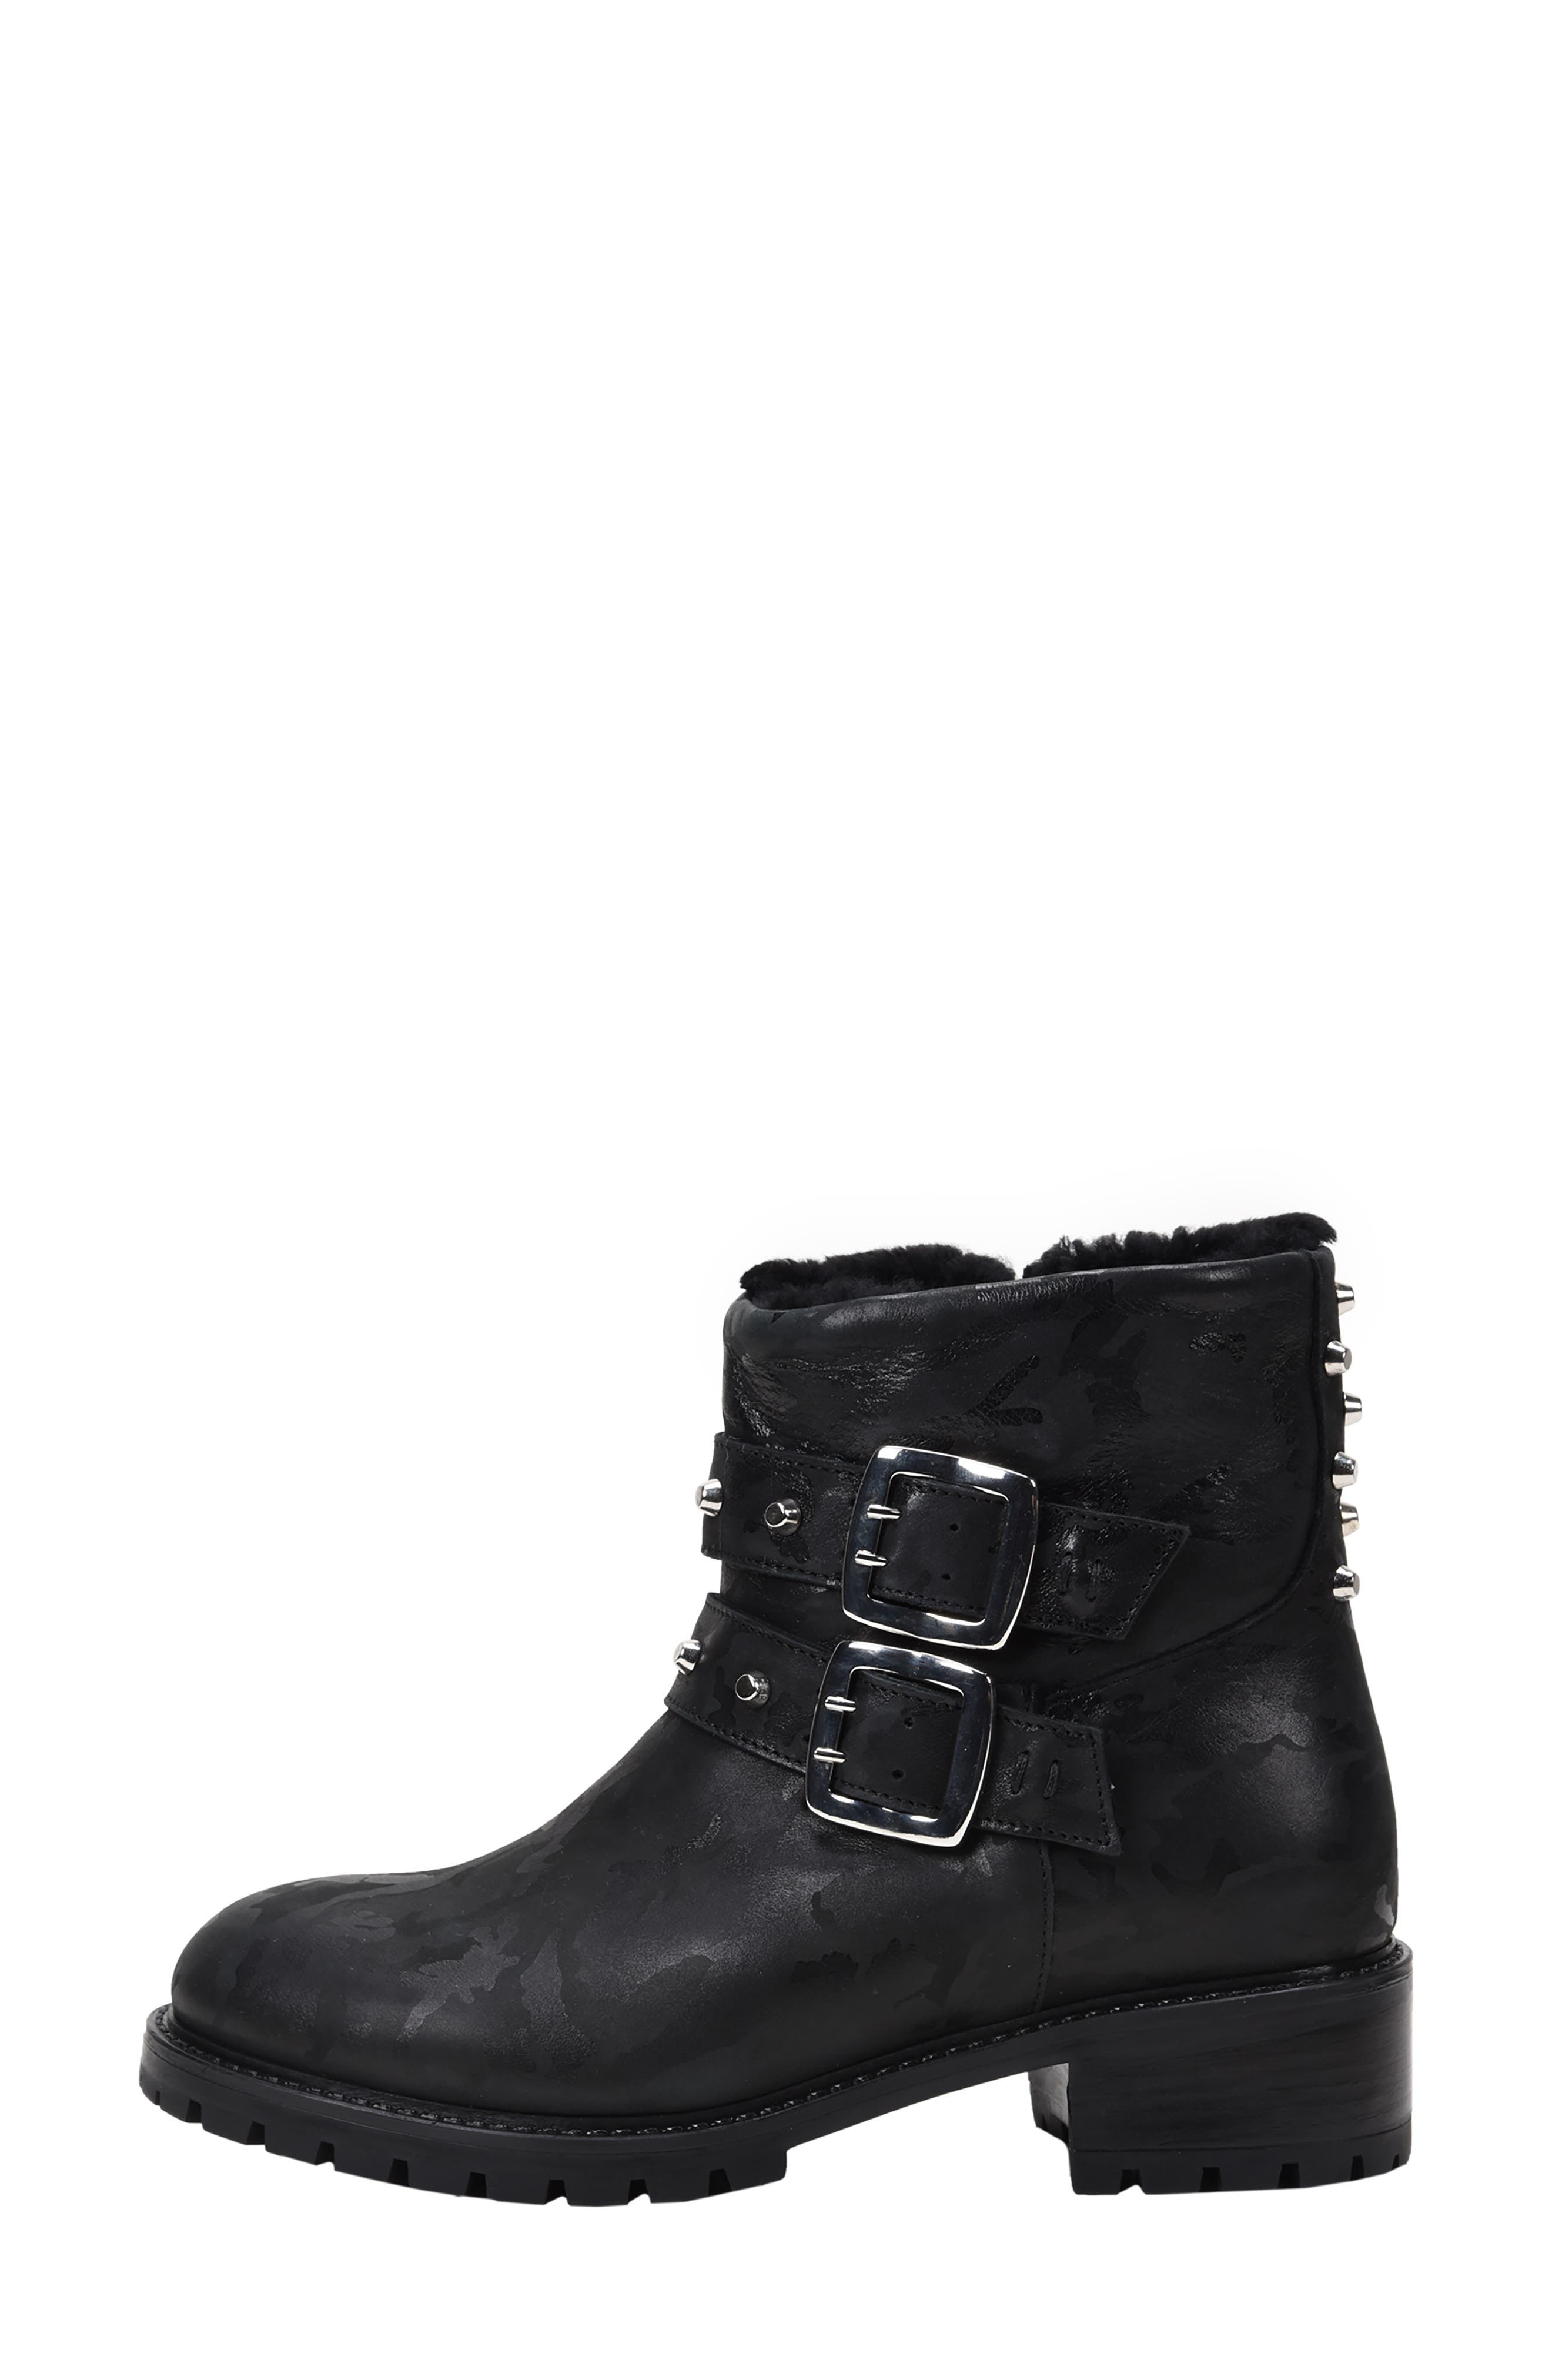 Stefana SP Genuine Shearling Lined Waterproof Bootie,                             Alternate thumbnail 2, color,                             BLACK CAMO LEATHER